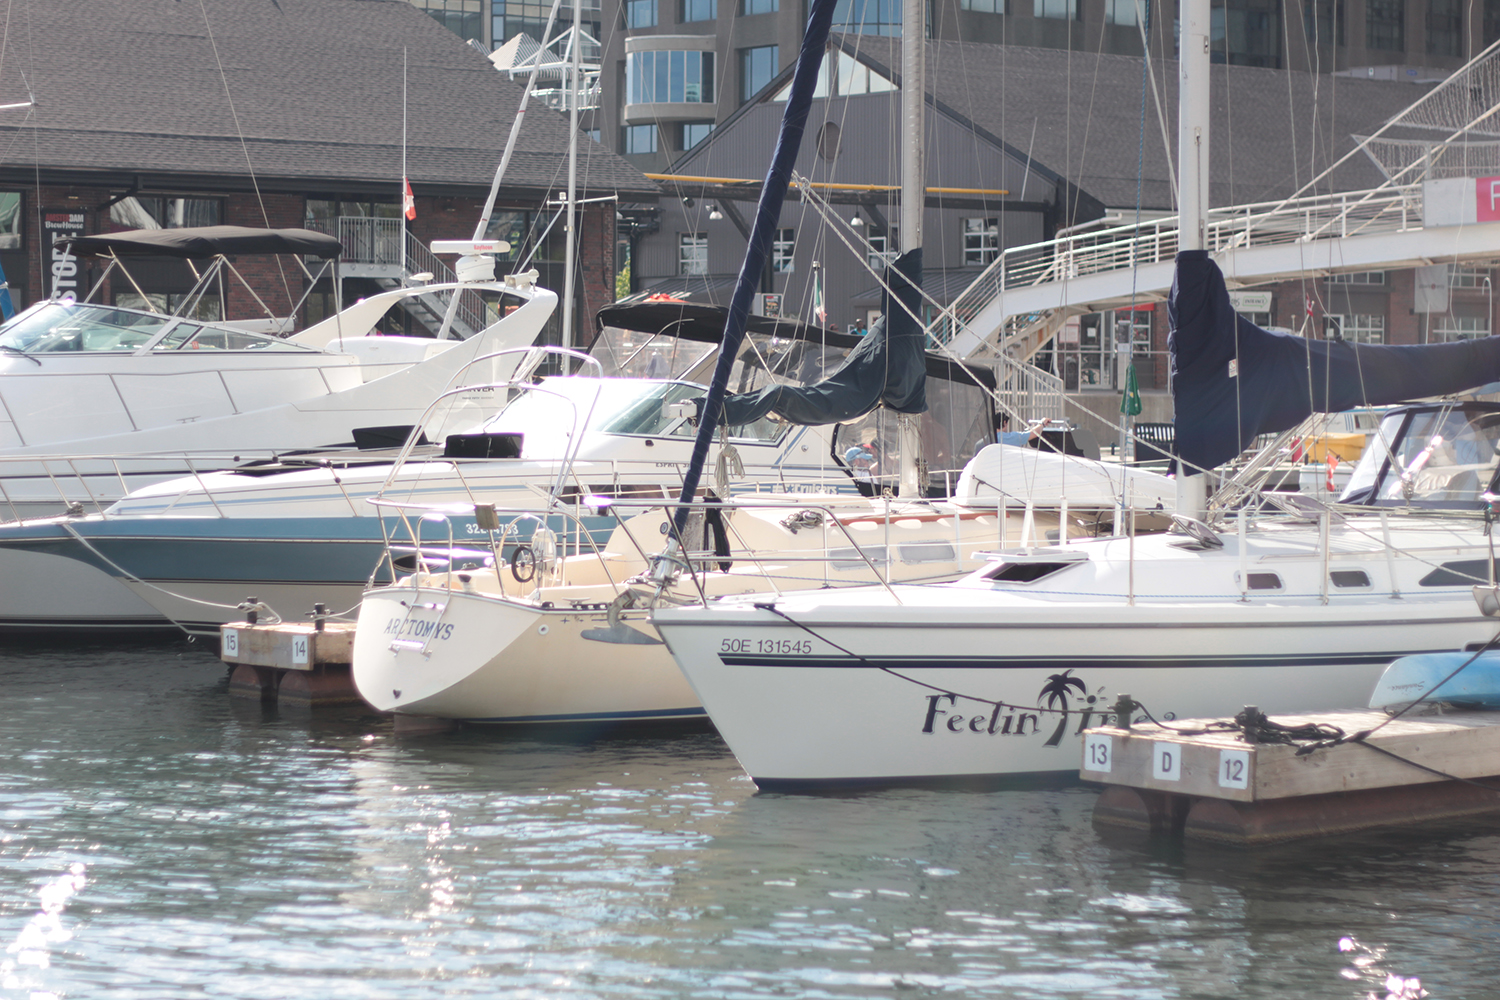 toronto harbourfront yachts